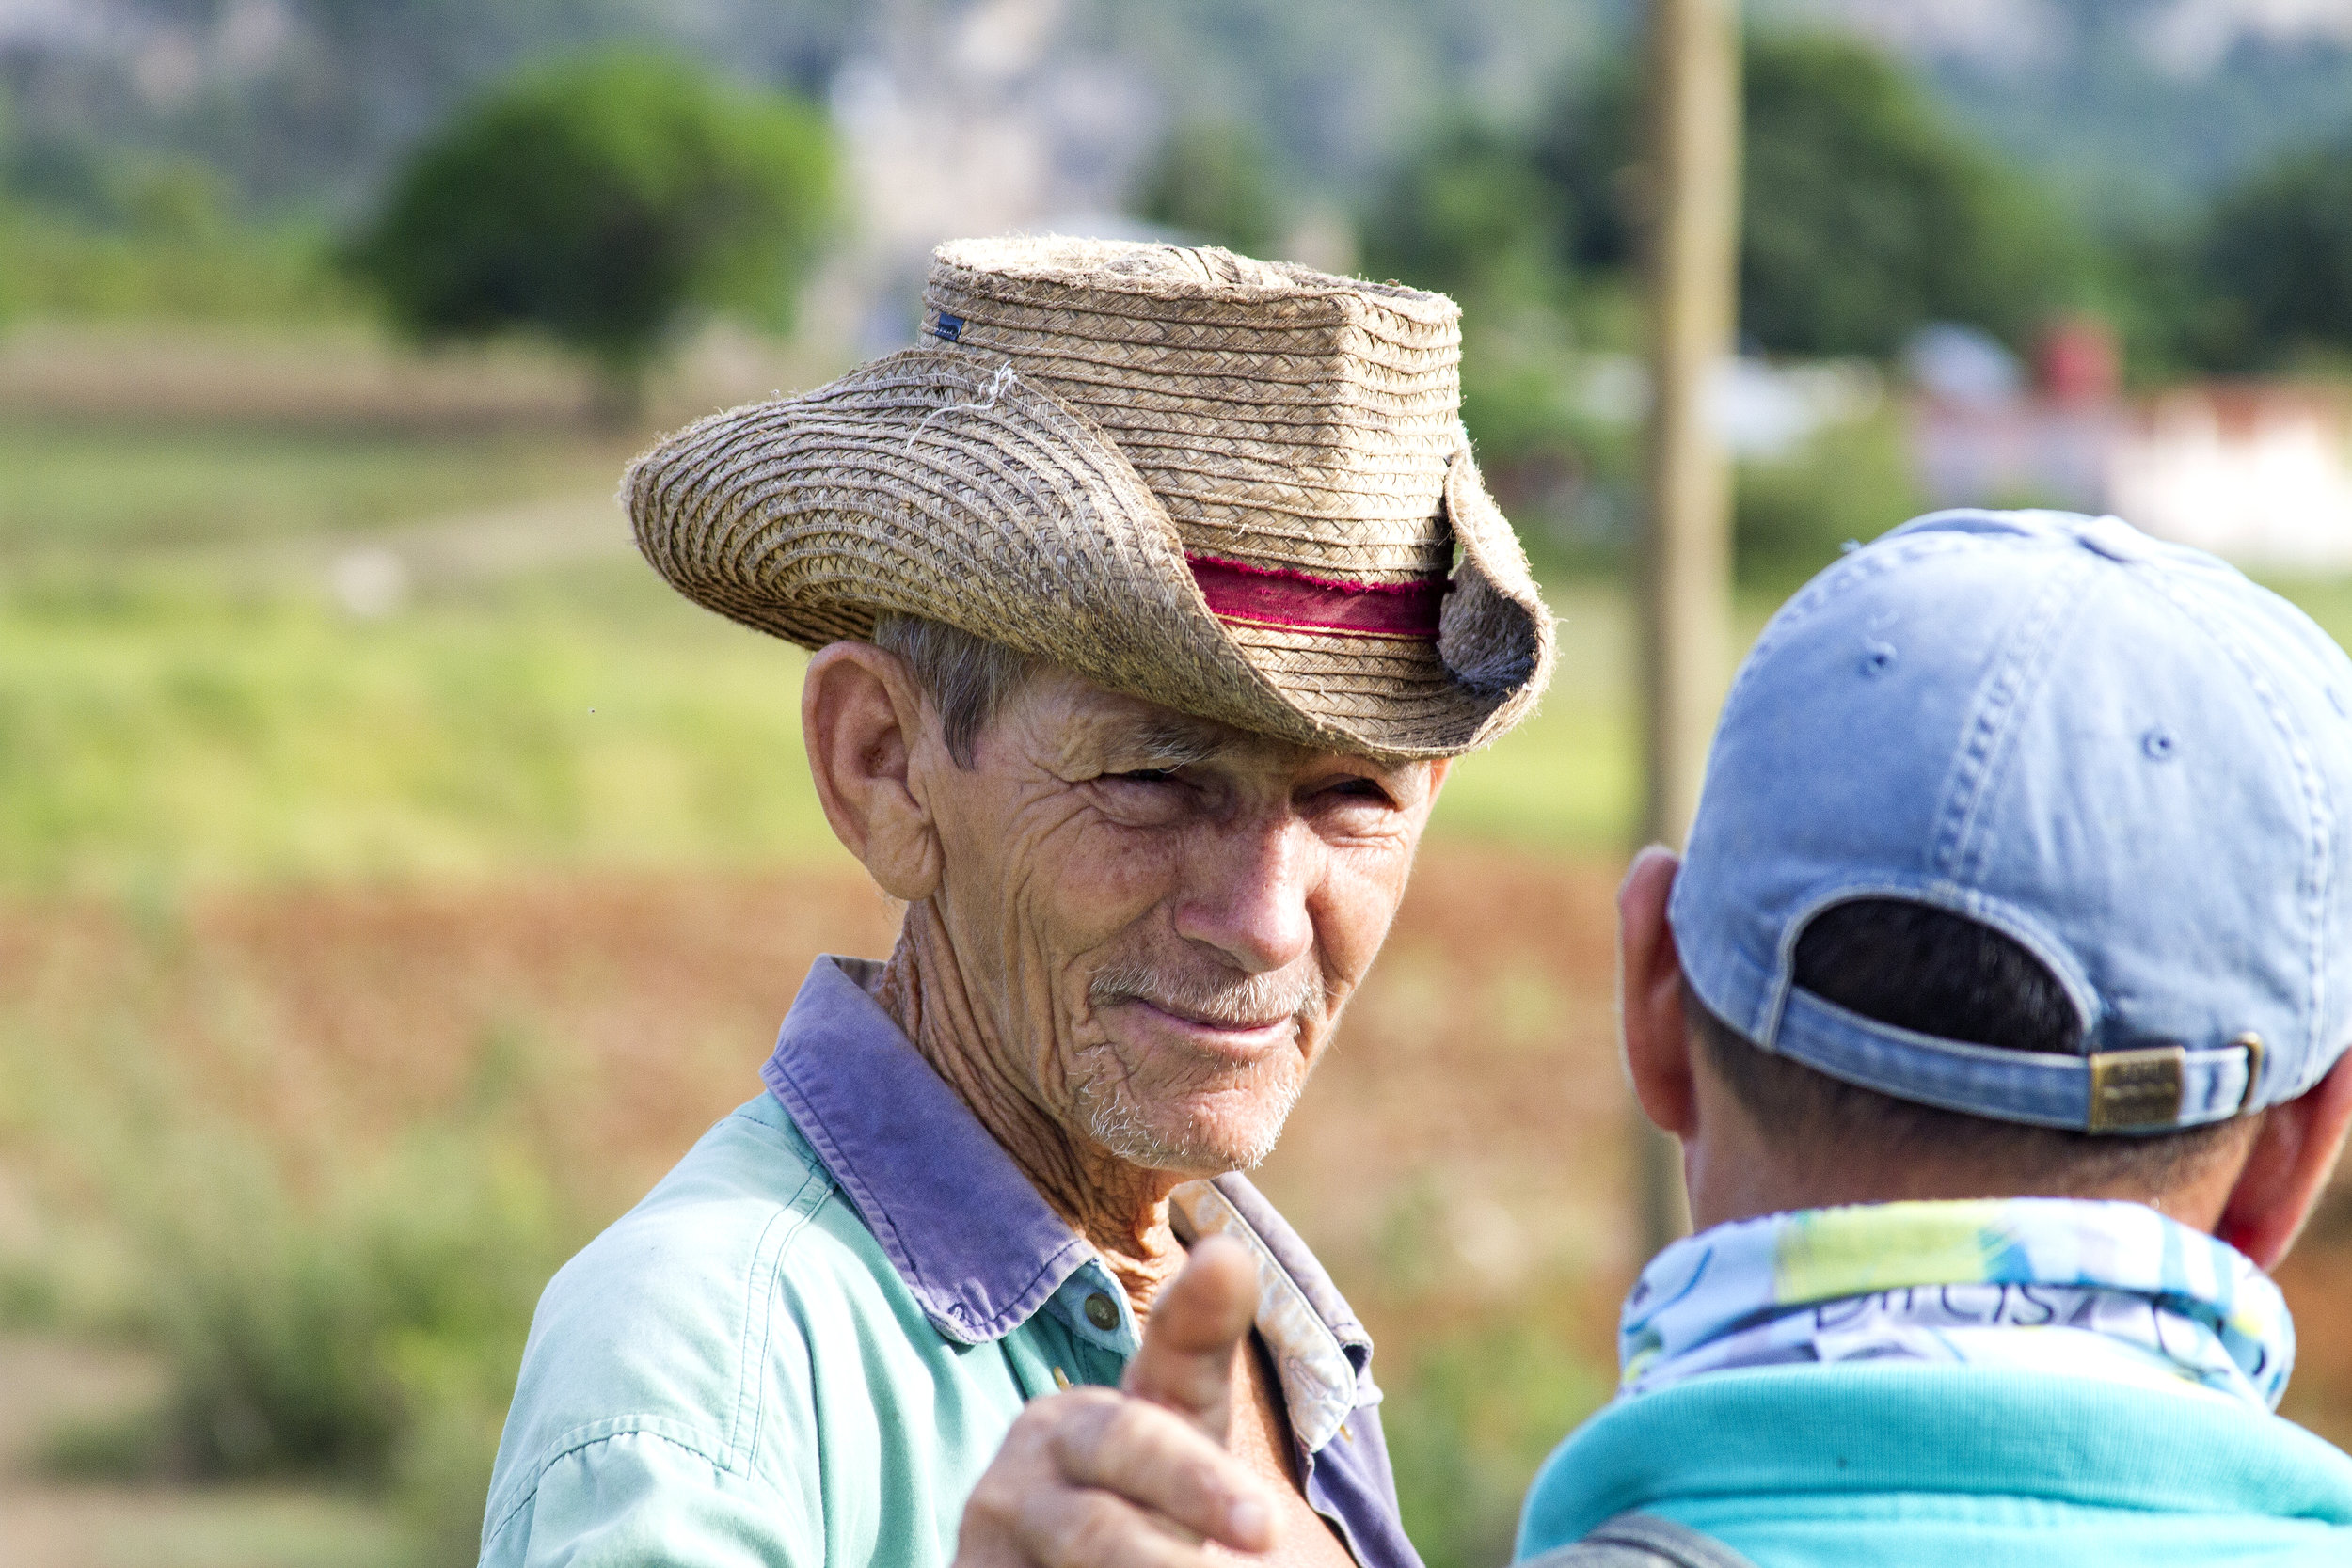 A farmer in Viñales greets our hiking guide